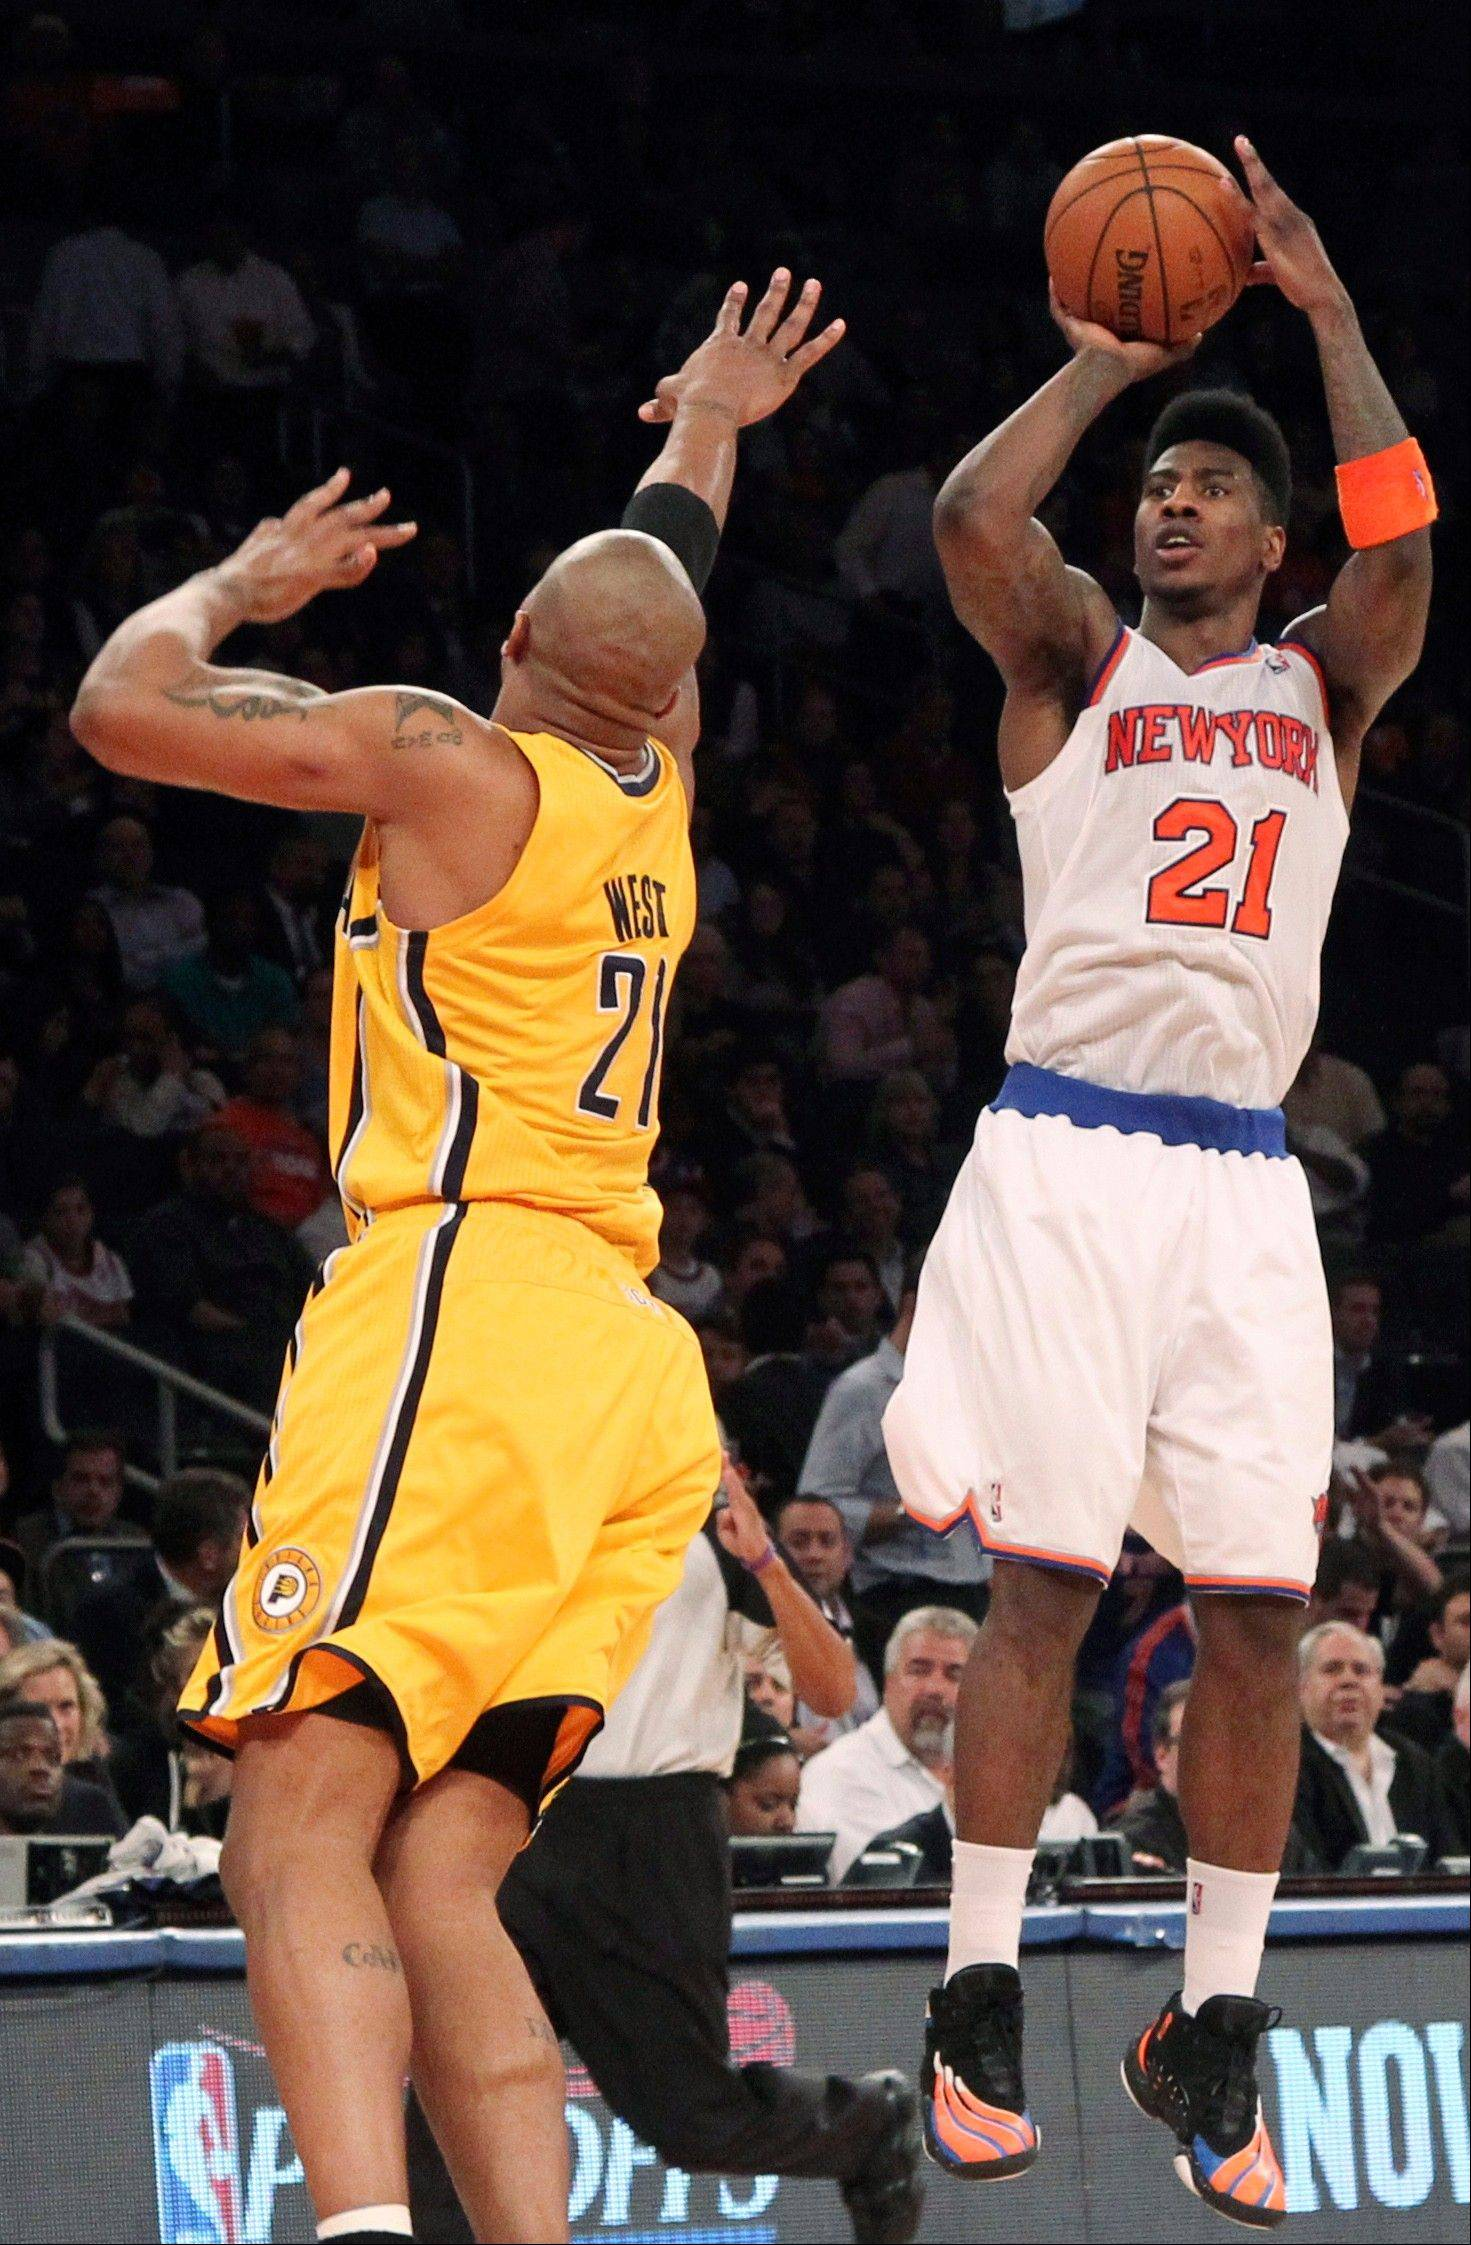 New York Knicks' Iman Shumpert (21) shoots a 3-pointer against Indiana Pacers' David West in the second half of Game 2 of their NBA basketball playoff series in the Eastern Conference semifinals at Madison Square Garden in New York, Tuesday, May 7, 2013. The Knicks won 105-79.